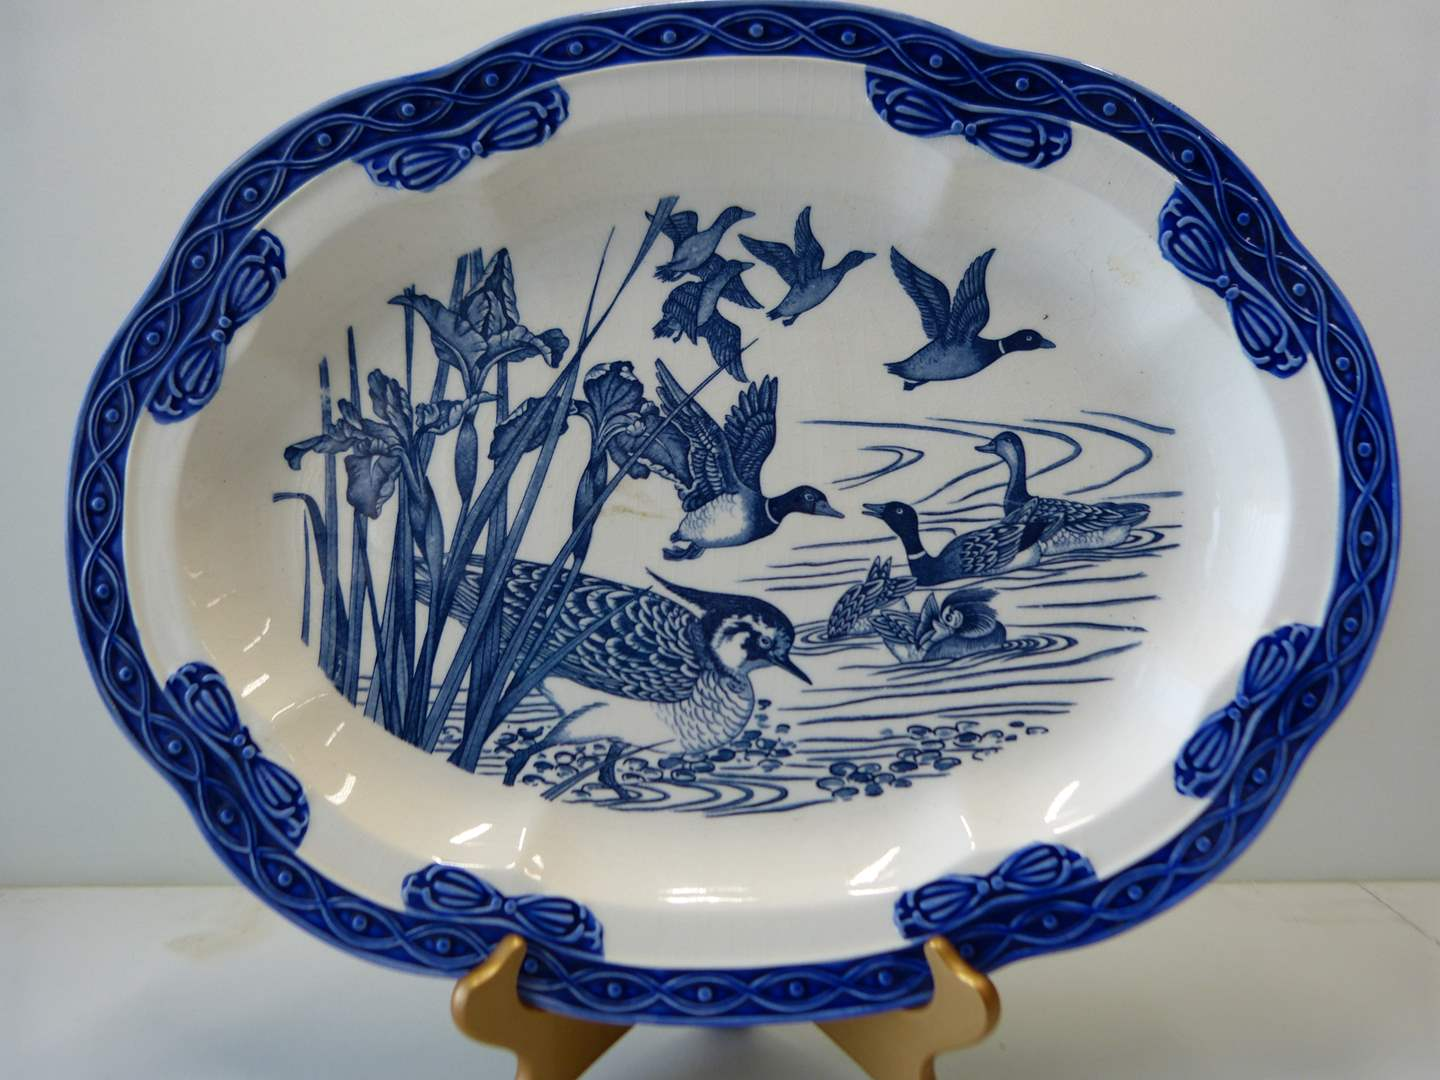 Lot # 32  Fantastic blue & white 14X18 hand painted platter (does have crazing but no breaks cracks etc) (main image)